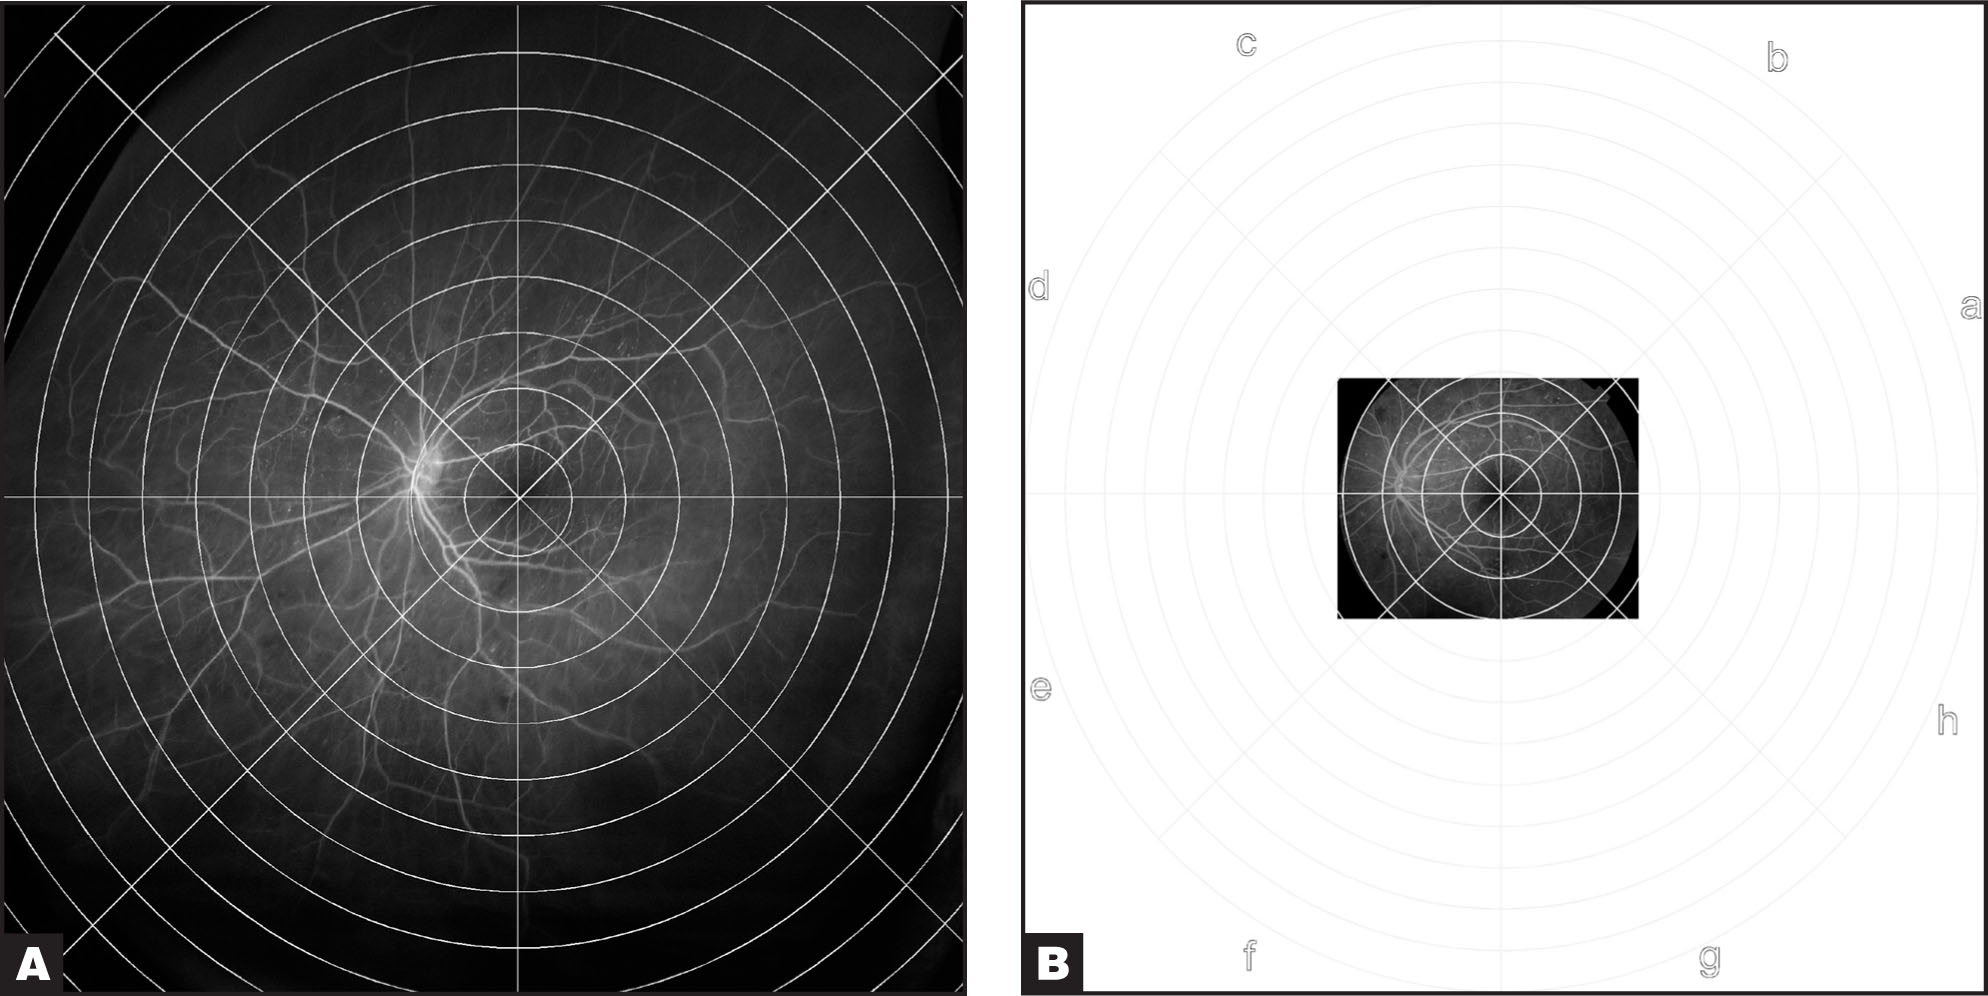 Digital Grids Have Been Superimposed on the Images in Figure 1 to Facilitate the Quantification of the Field of View Differences and Areas of Ischemia and Retinal Neovascularization. the Distance Between Consecutive Rings Is 1 Disc Diameter. the Ultrawide Device Images Significantly More of the Fundus (A) Compared to the Image Obtained by a Conventional Digital Camera (B).